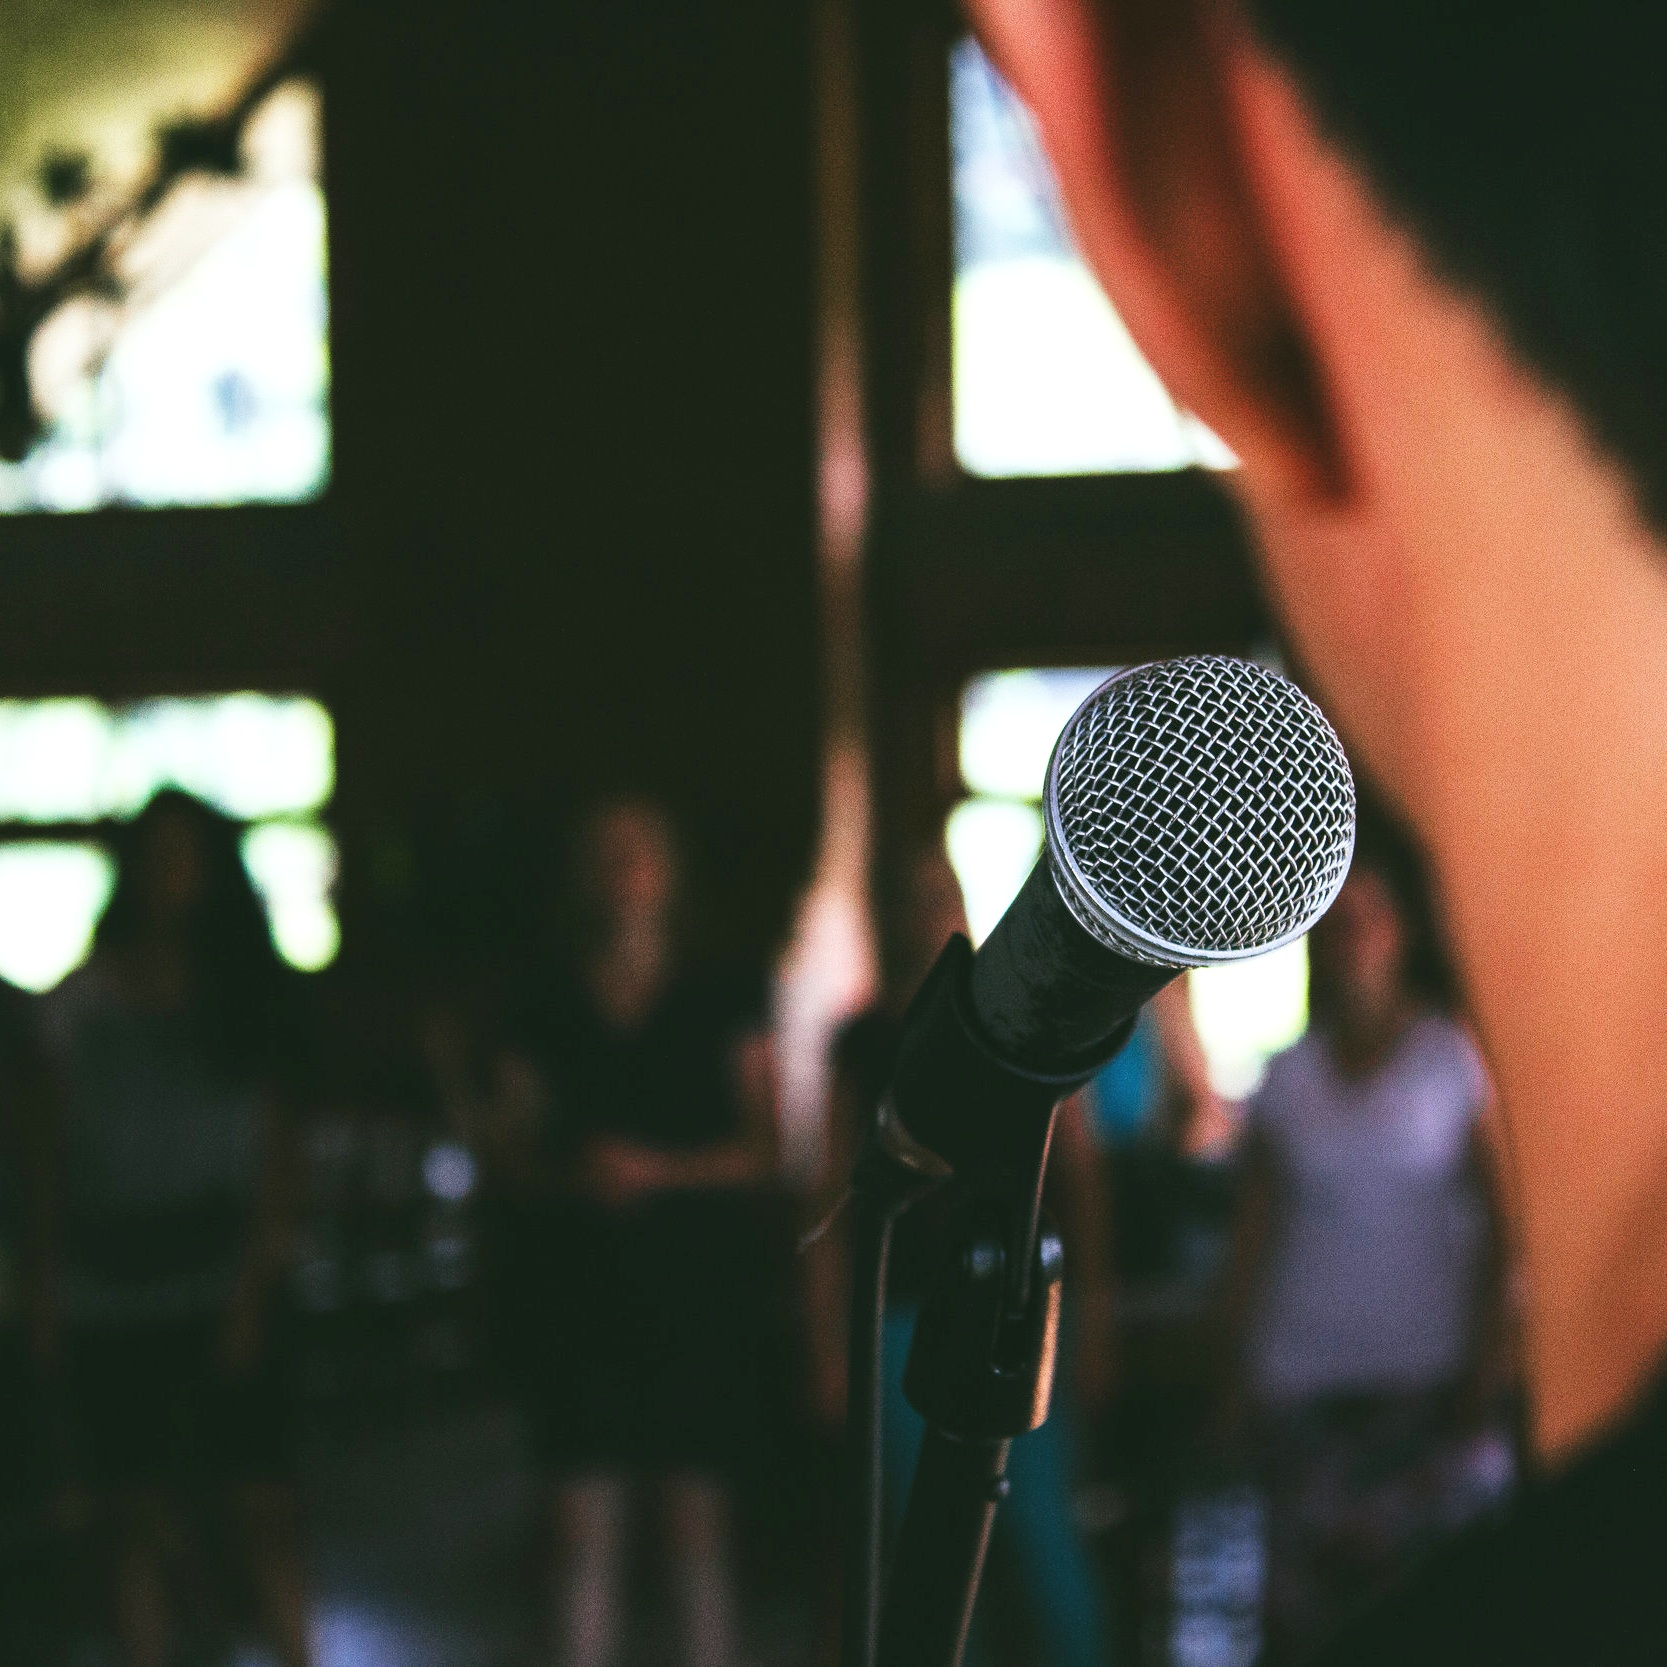 Public Speaking - The ability to communicate publicly is vital in most of the sports management professions.Tagar Sports Management provides helpful communication tips and prepare you for your interviews in all platforms of media.